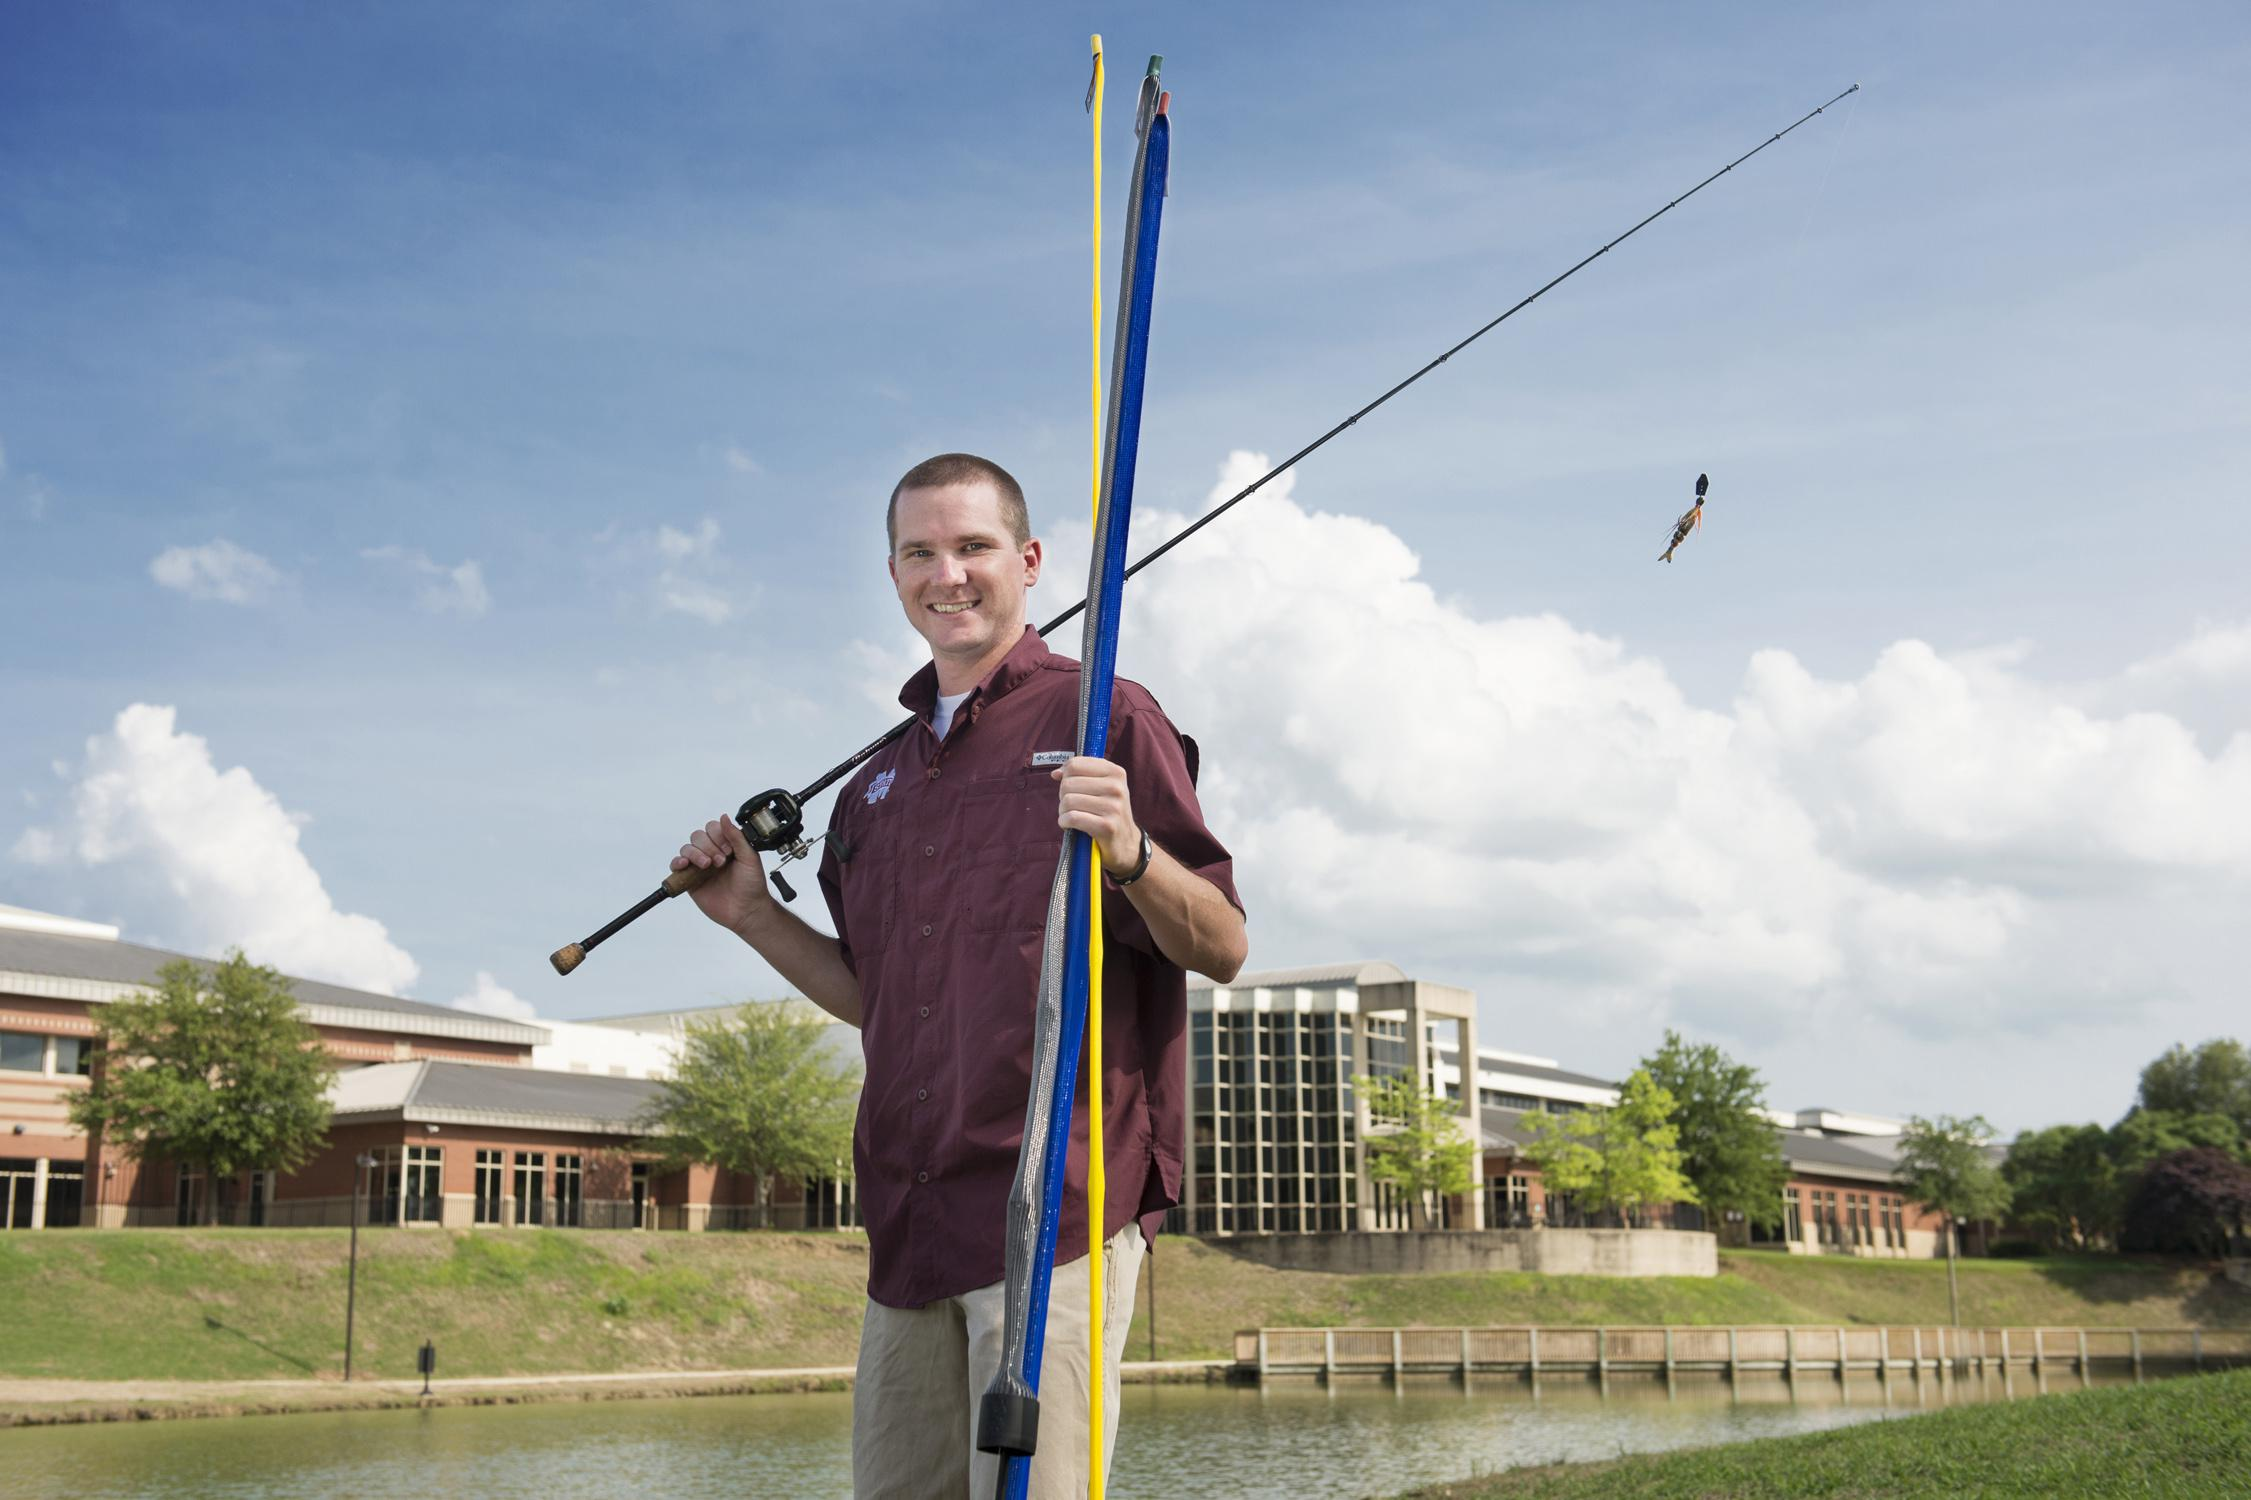 Mississippi State University senior Charles Parker recently won $10,000 during MSU's Office of Entrepreneurship and Technology Transfer Entrepreneurship Week for his fishing pole protectors, called Rod Sox. Parker is shown here at MSU's Chadwick Lake on May 13, 2014. (Photo by MSU Office of Public Affairs/Megan Bean)